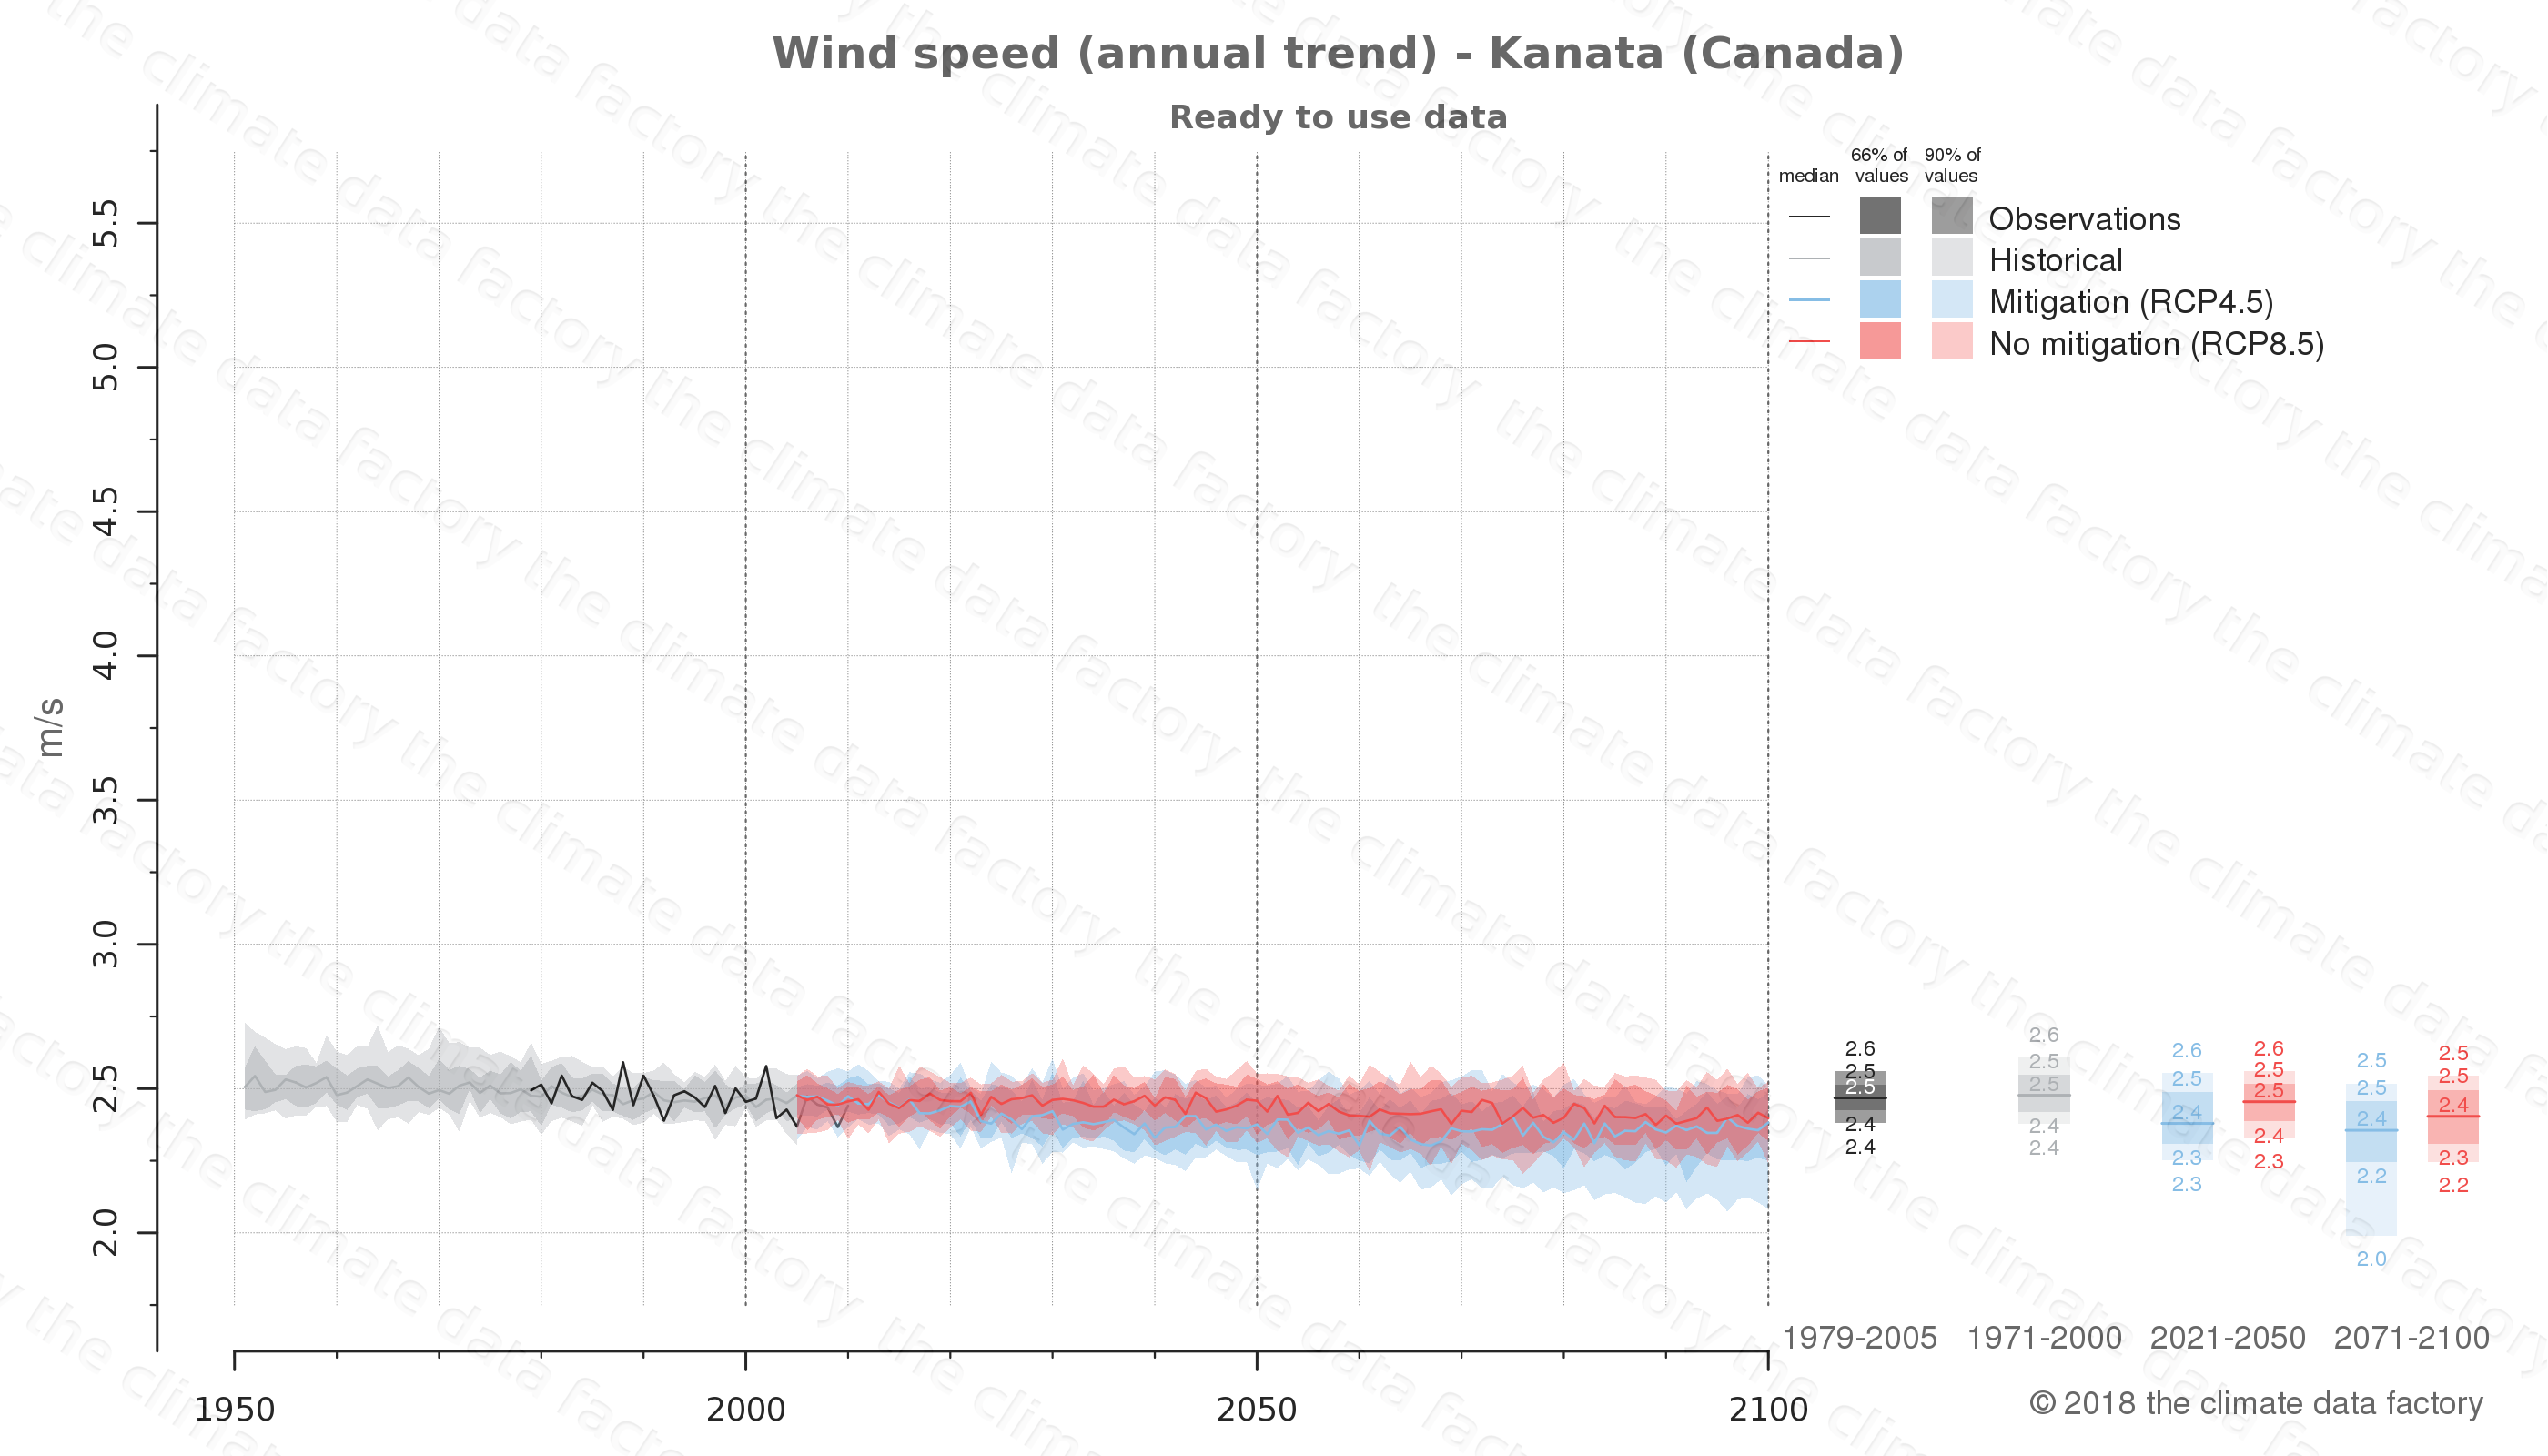 climate change data policy adaptation climate graph city data wind-speed kanata canada